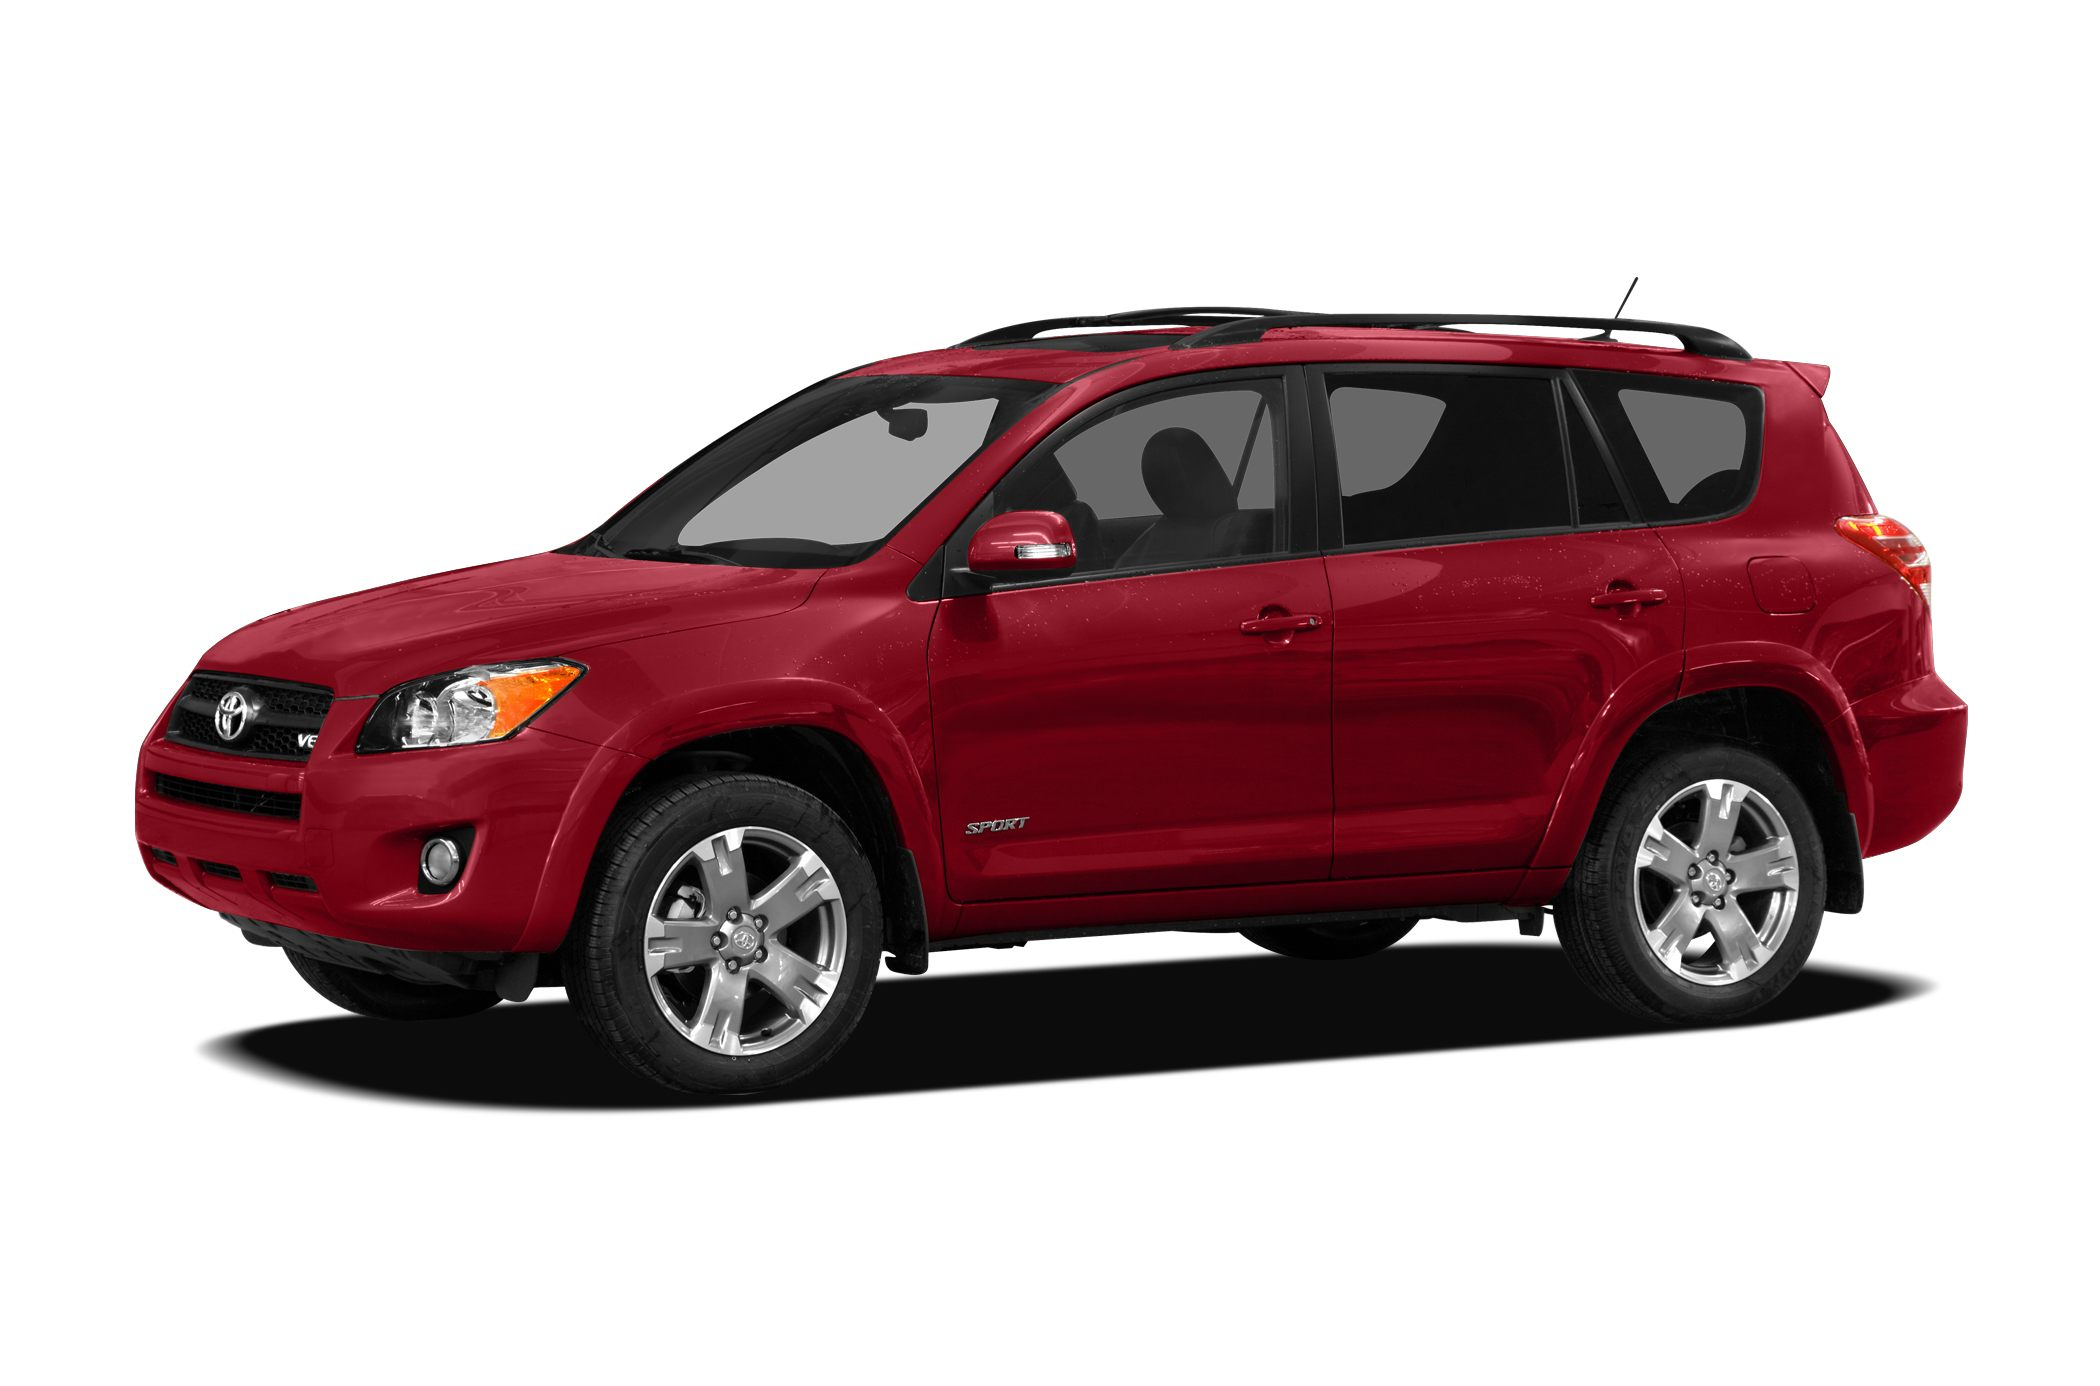 2009 Toyota RAV4 Sport SUV for sale in Little Rock for $14,900 with 36,000 miles